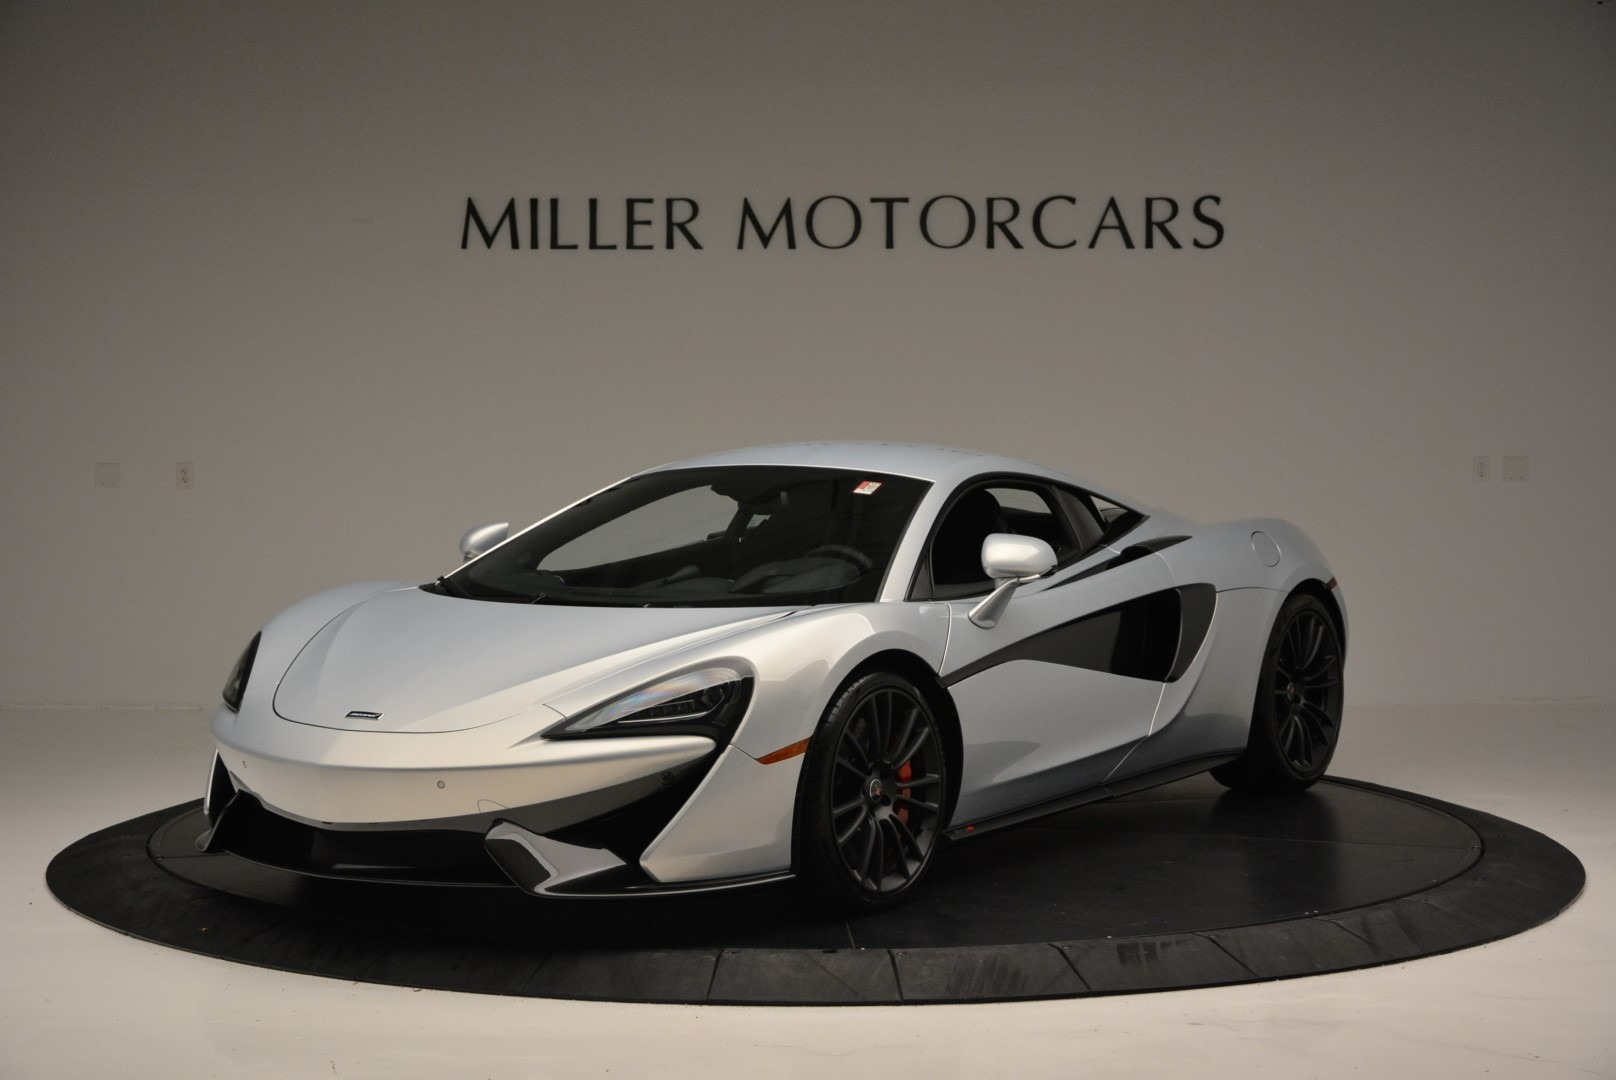 Used 2017 McLaren 570S Coupe for sale Sold at Bentley Greenwich in Greenwich CT 06830 1